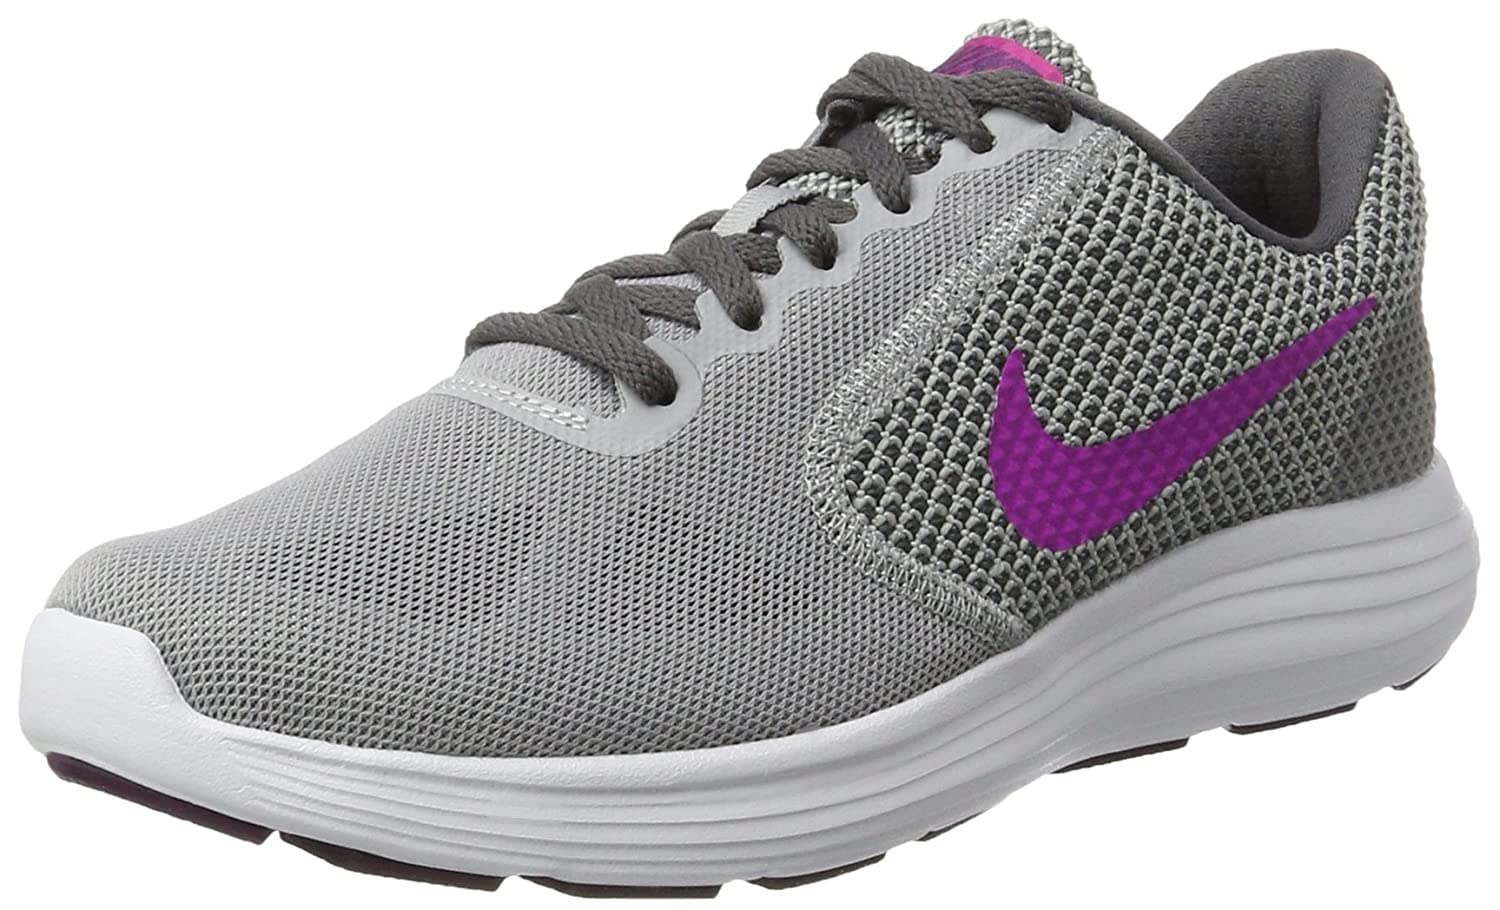 76b58caf2e4c Nike Women s WMNS Revolution 3 Wf Grey Pink Running Shoes-3 UK India (36  EU)(5.5 US) (819303-009)  Amazon.in  Shoes   Handbags